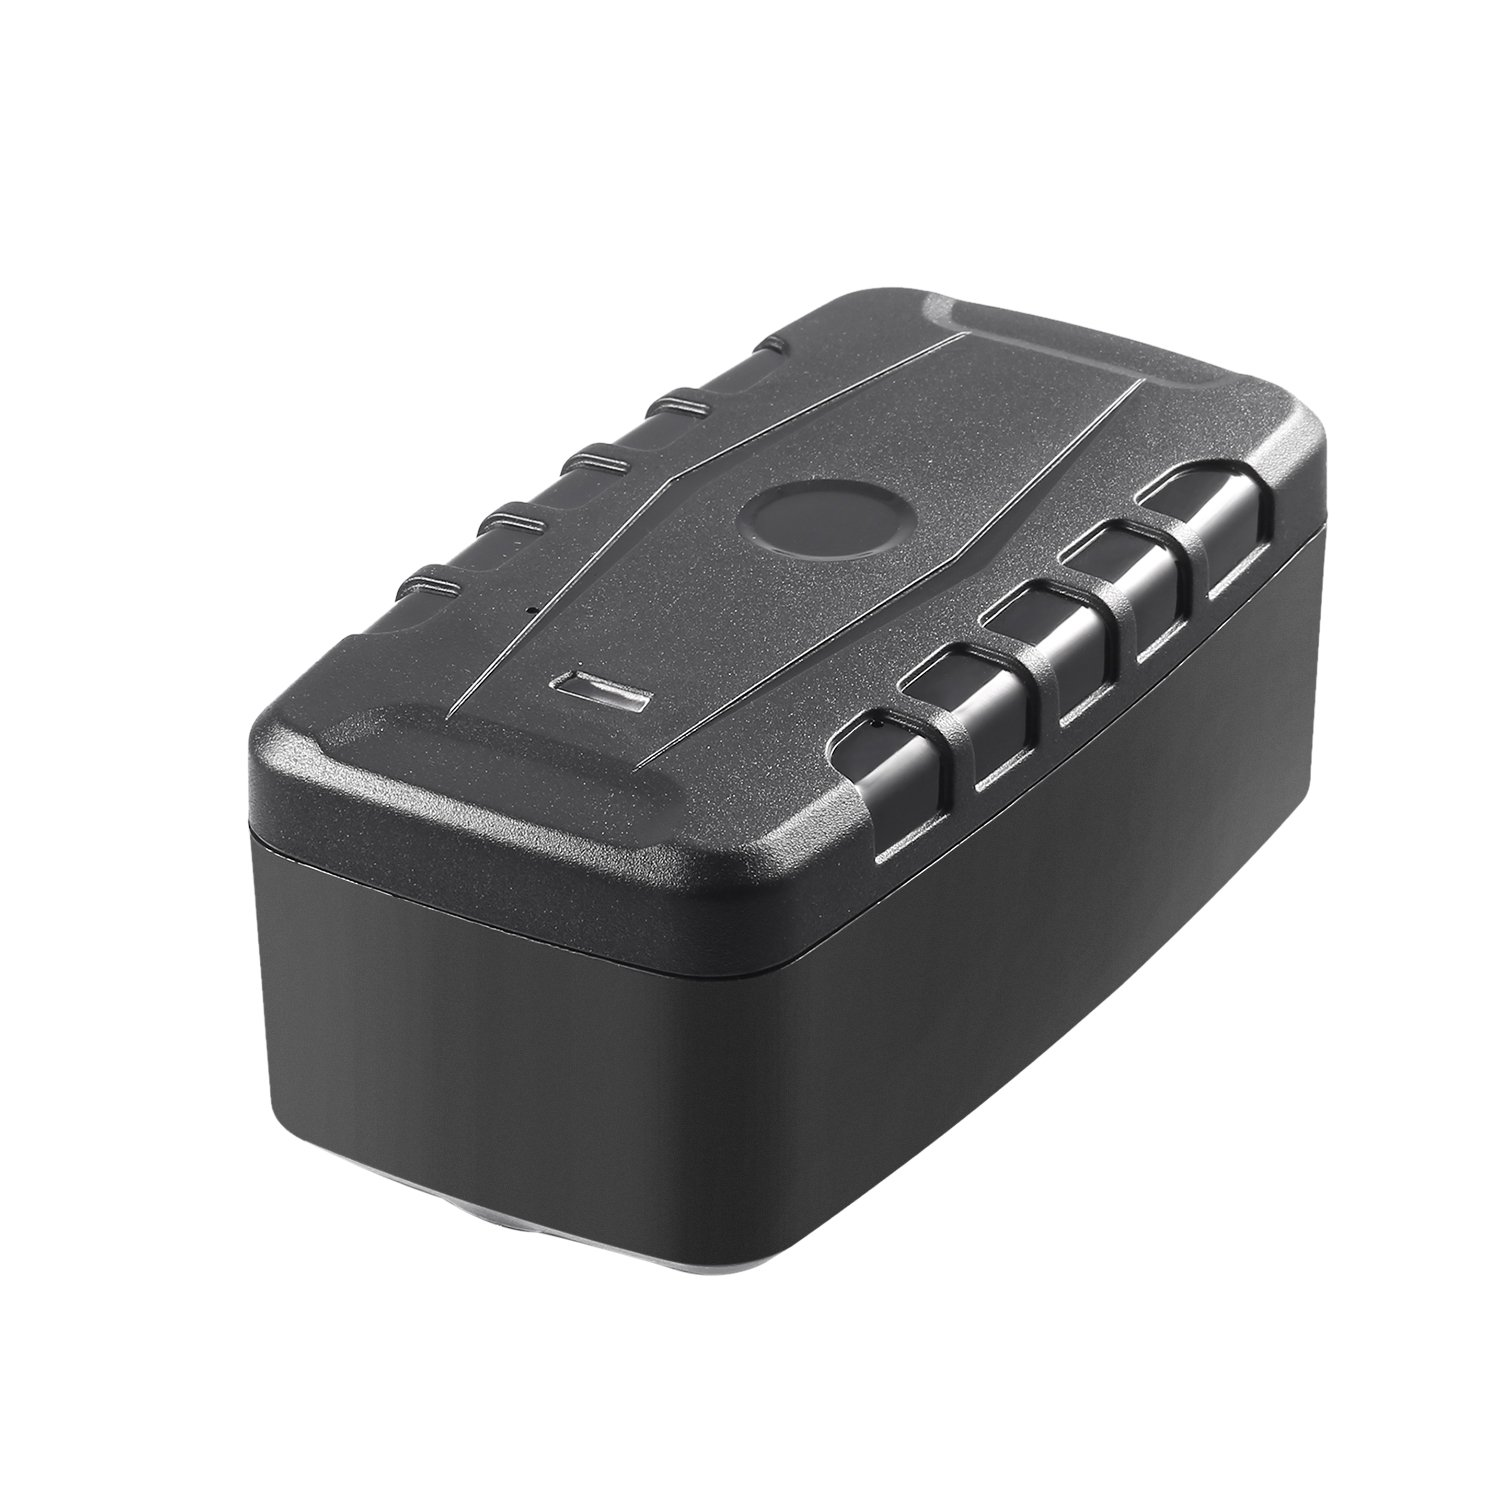 Car GPS Tracker,LESHP for vehical Locator Powerful Magnet Free Installation Free Fee Lifetime Platform 20,000mAh Waterproof GPRS Tracking Standby Time 240 days for Vehicles Container Cargo Locator